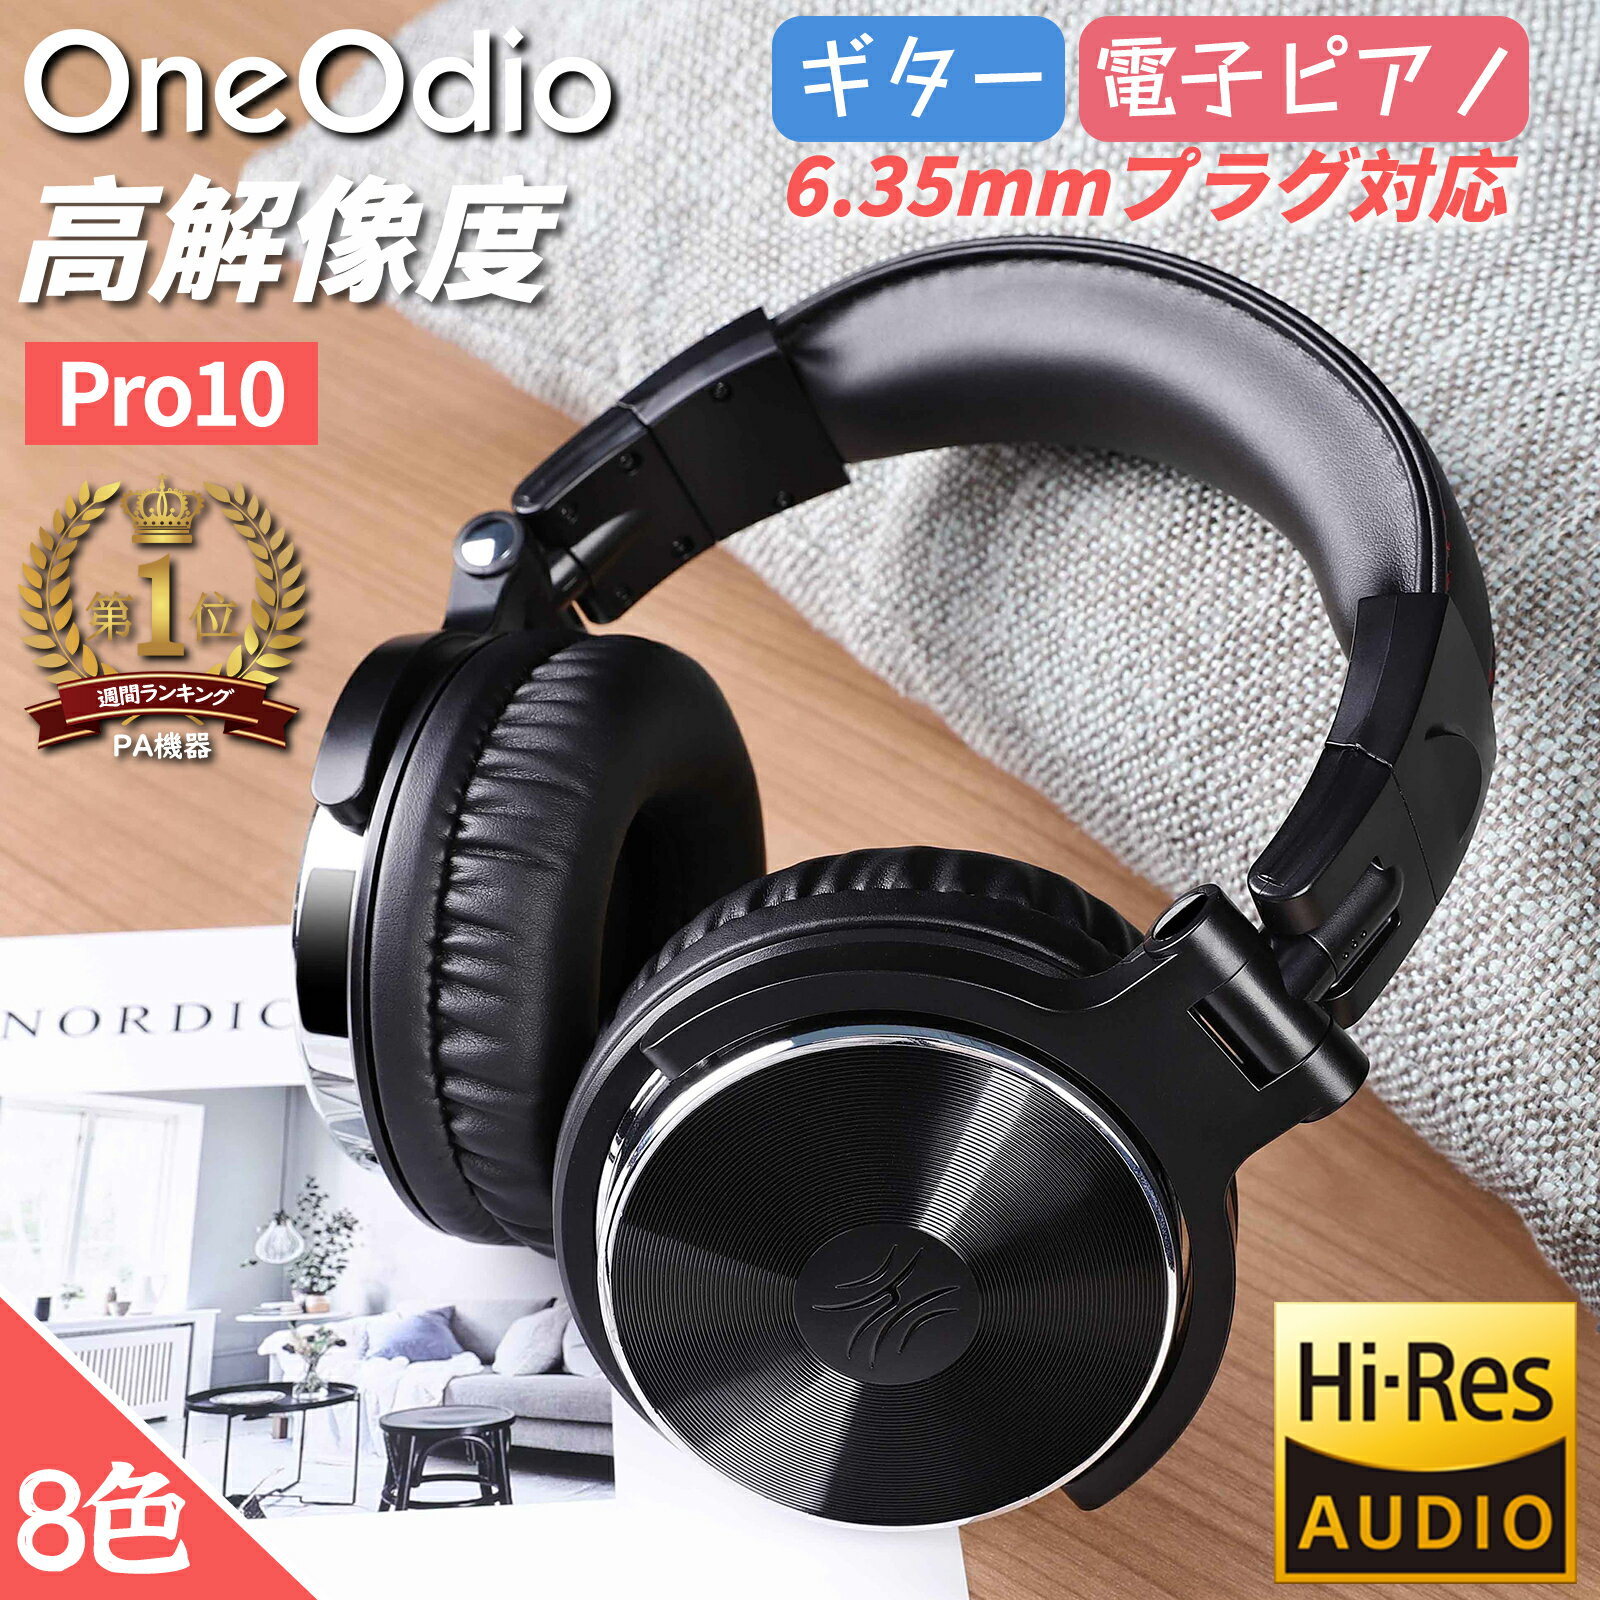 PA機器, モニターヘッドホン 20OFFOneOdio Pro10 Hi-res 50mm DJ iPhone Andoroid PC PS4 8